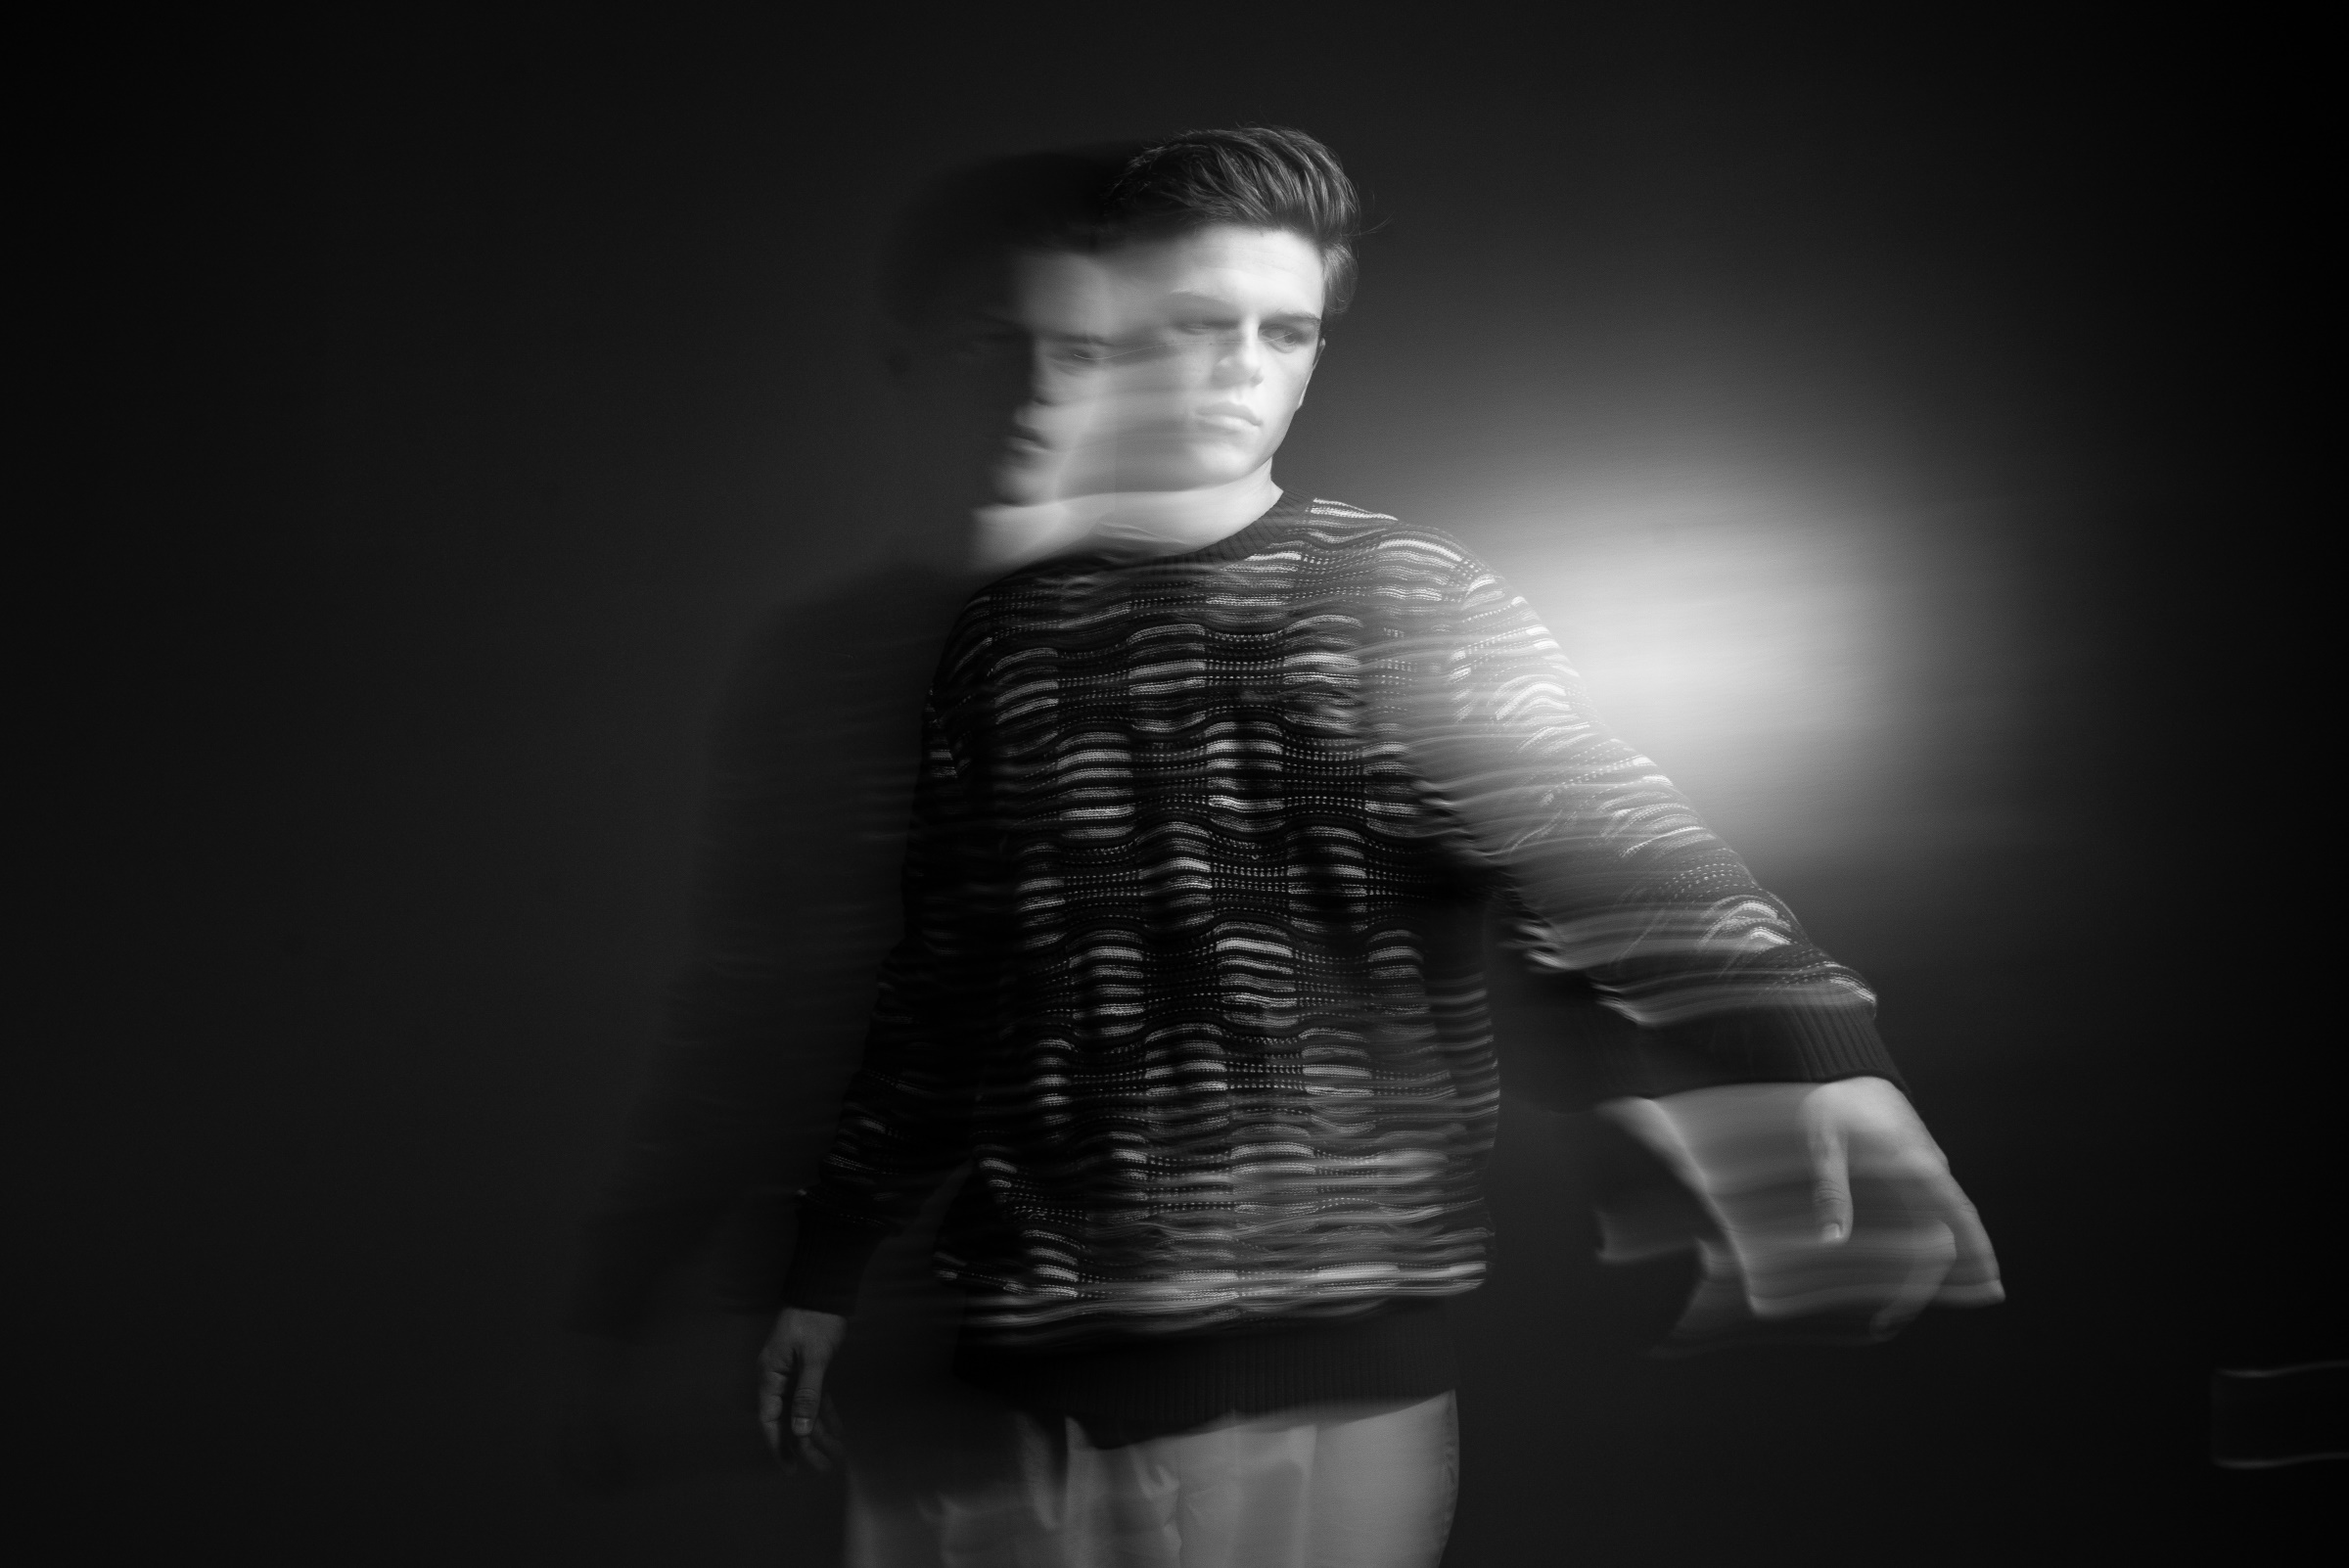 'Lonely Light' Is The Latest Release From 18-Year-Old Breakout Star Lamorn